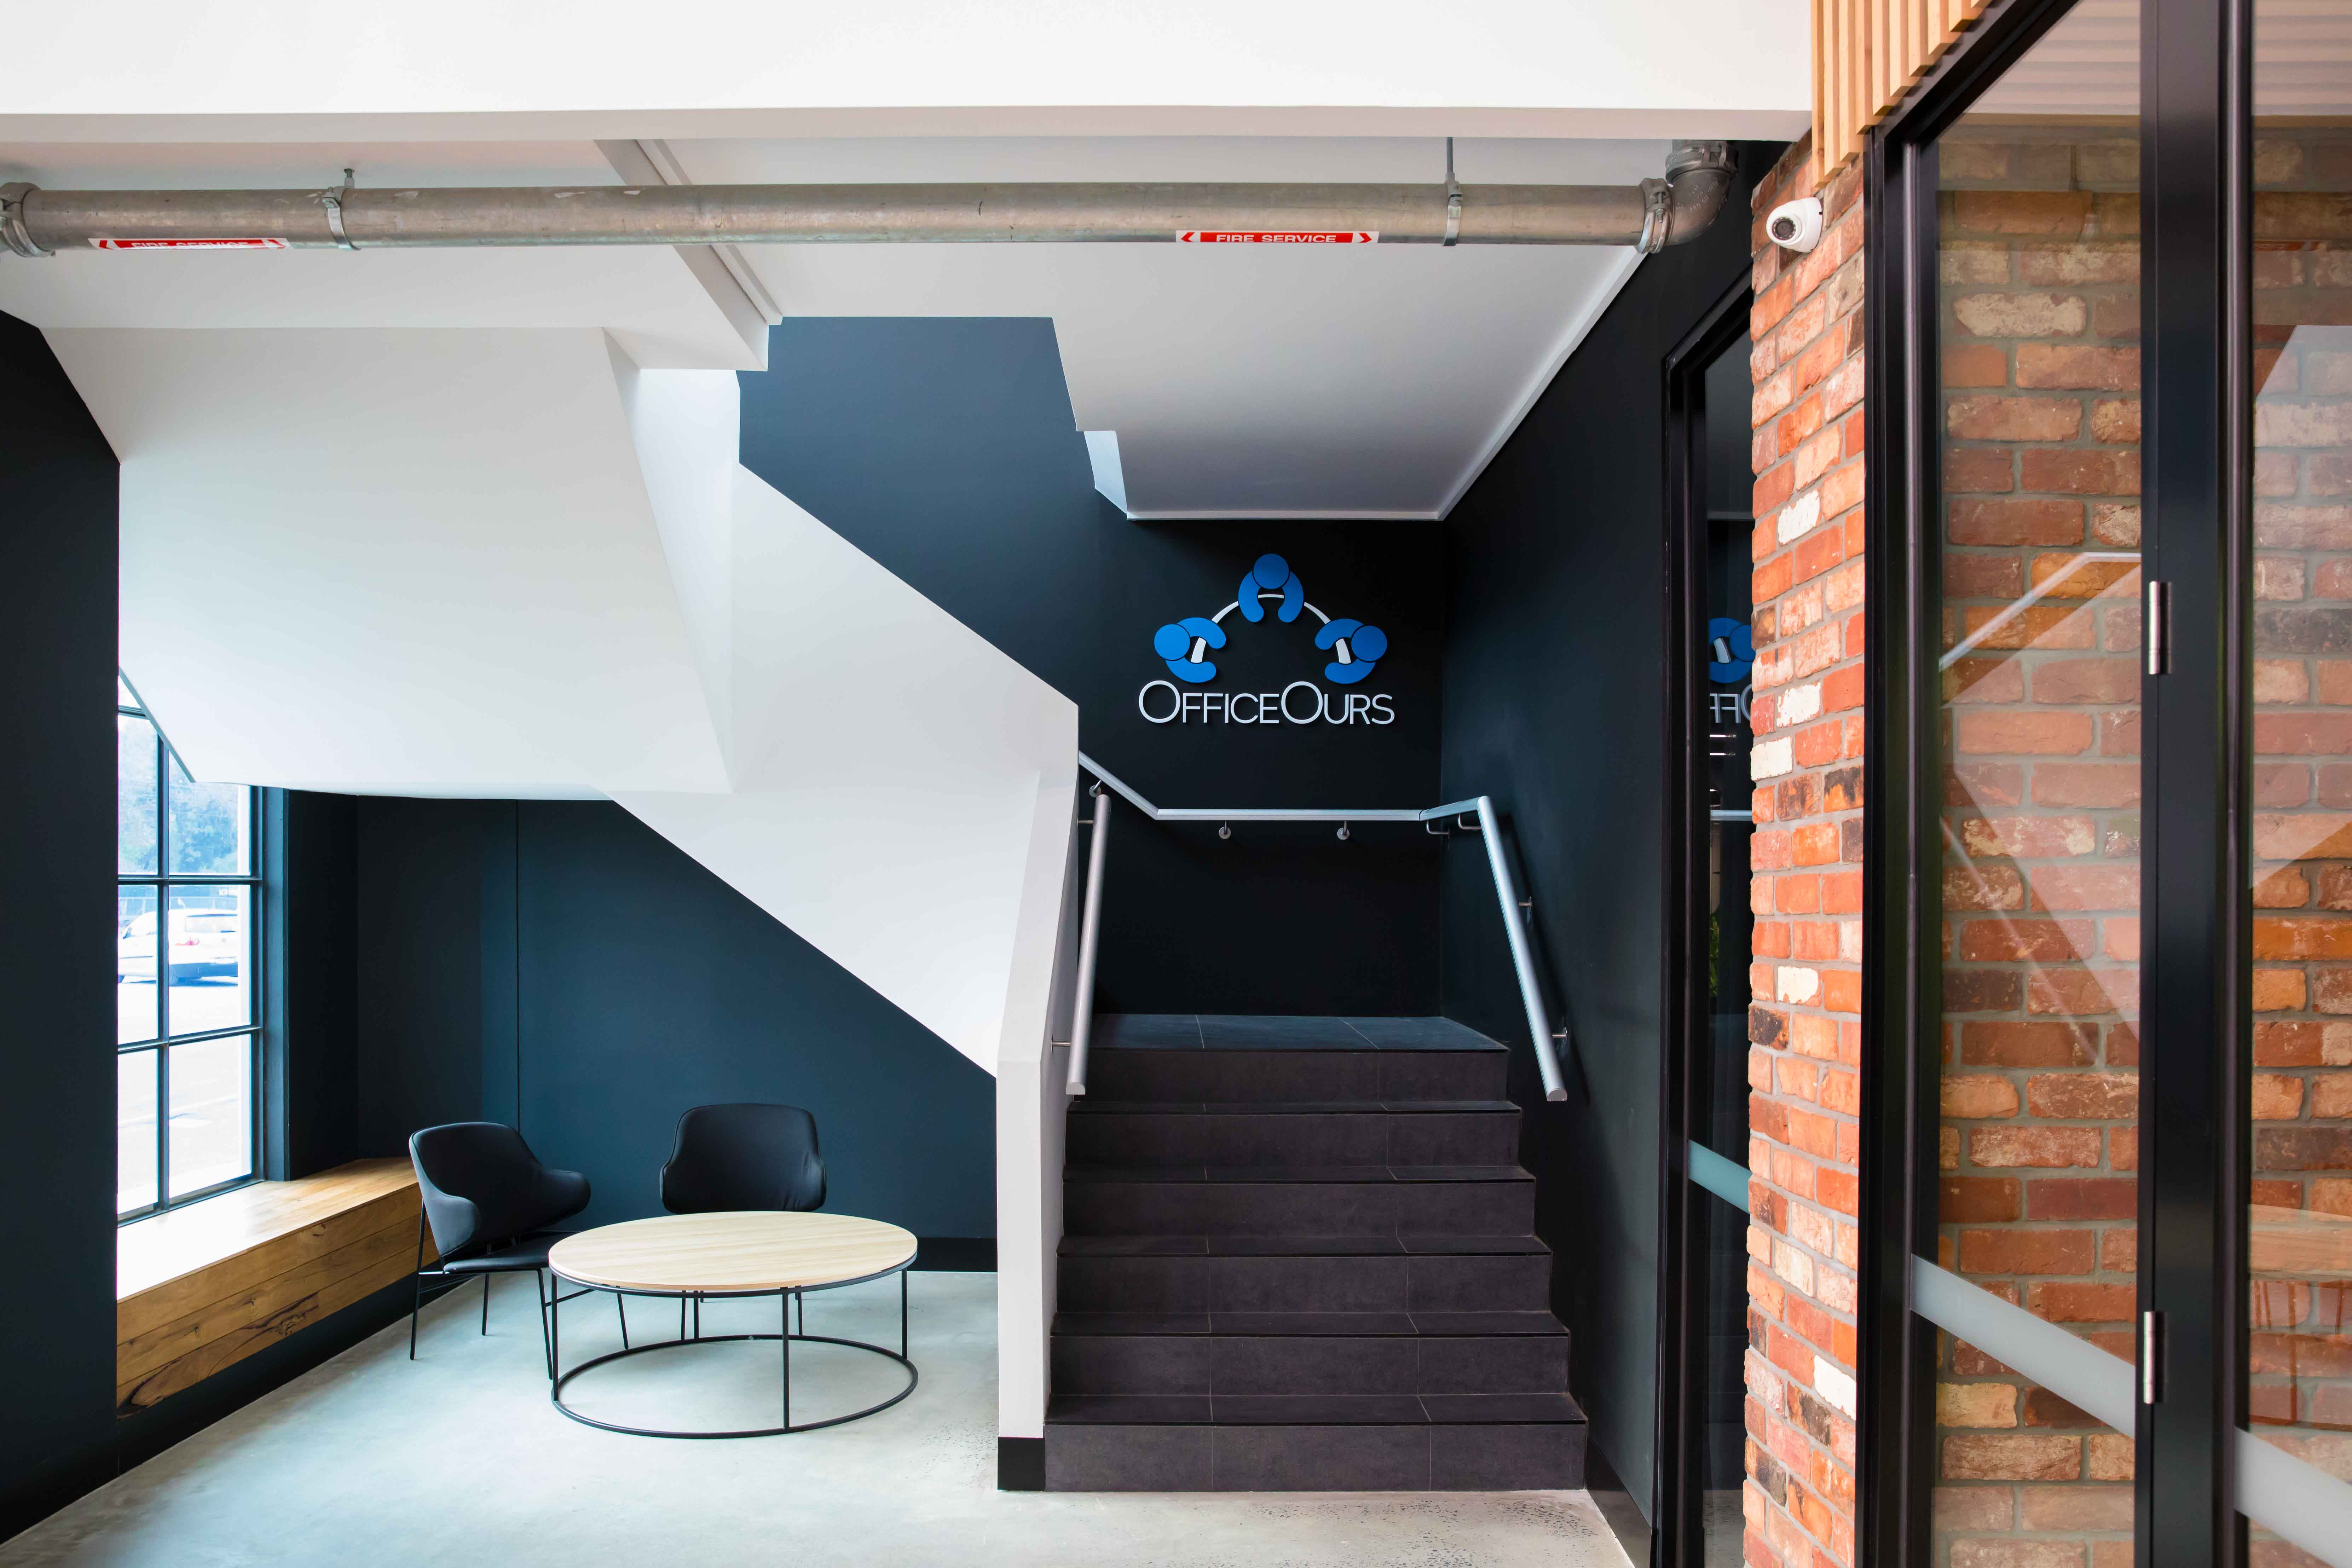 OfficeOurs Spotswood, Melbourne